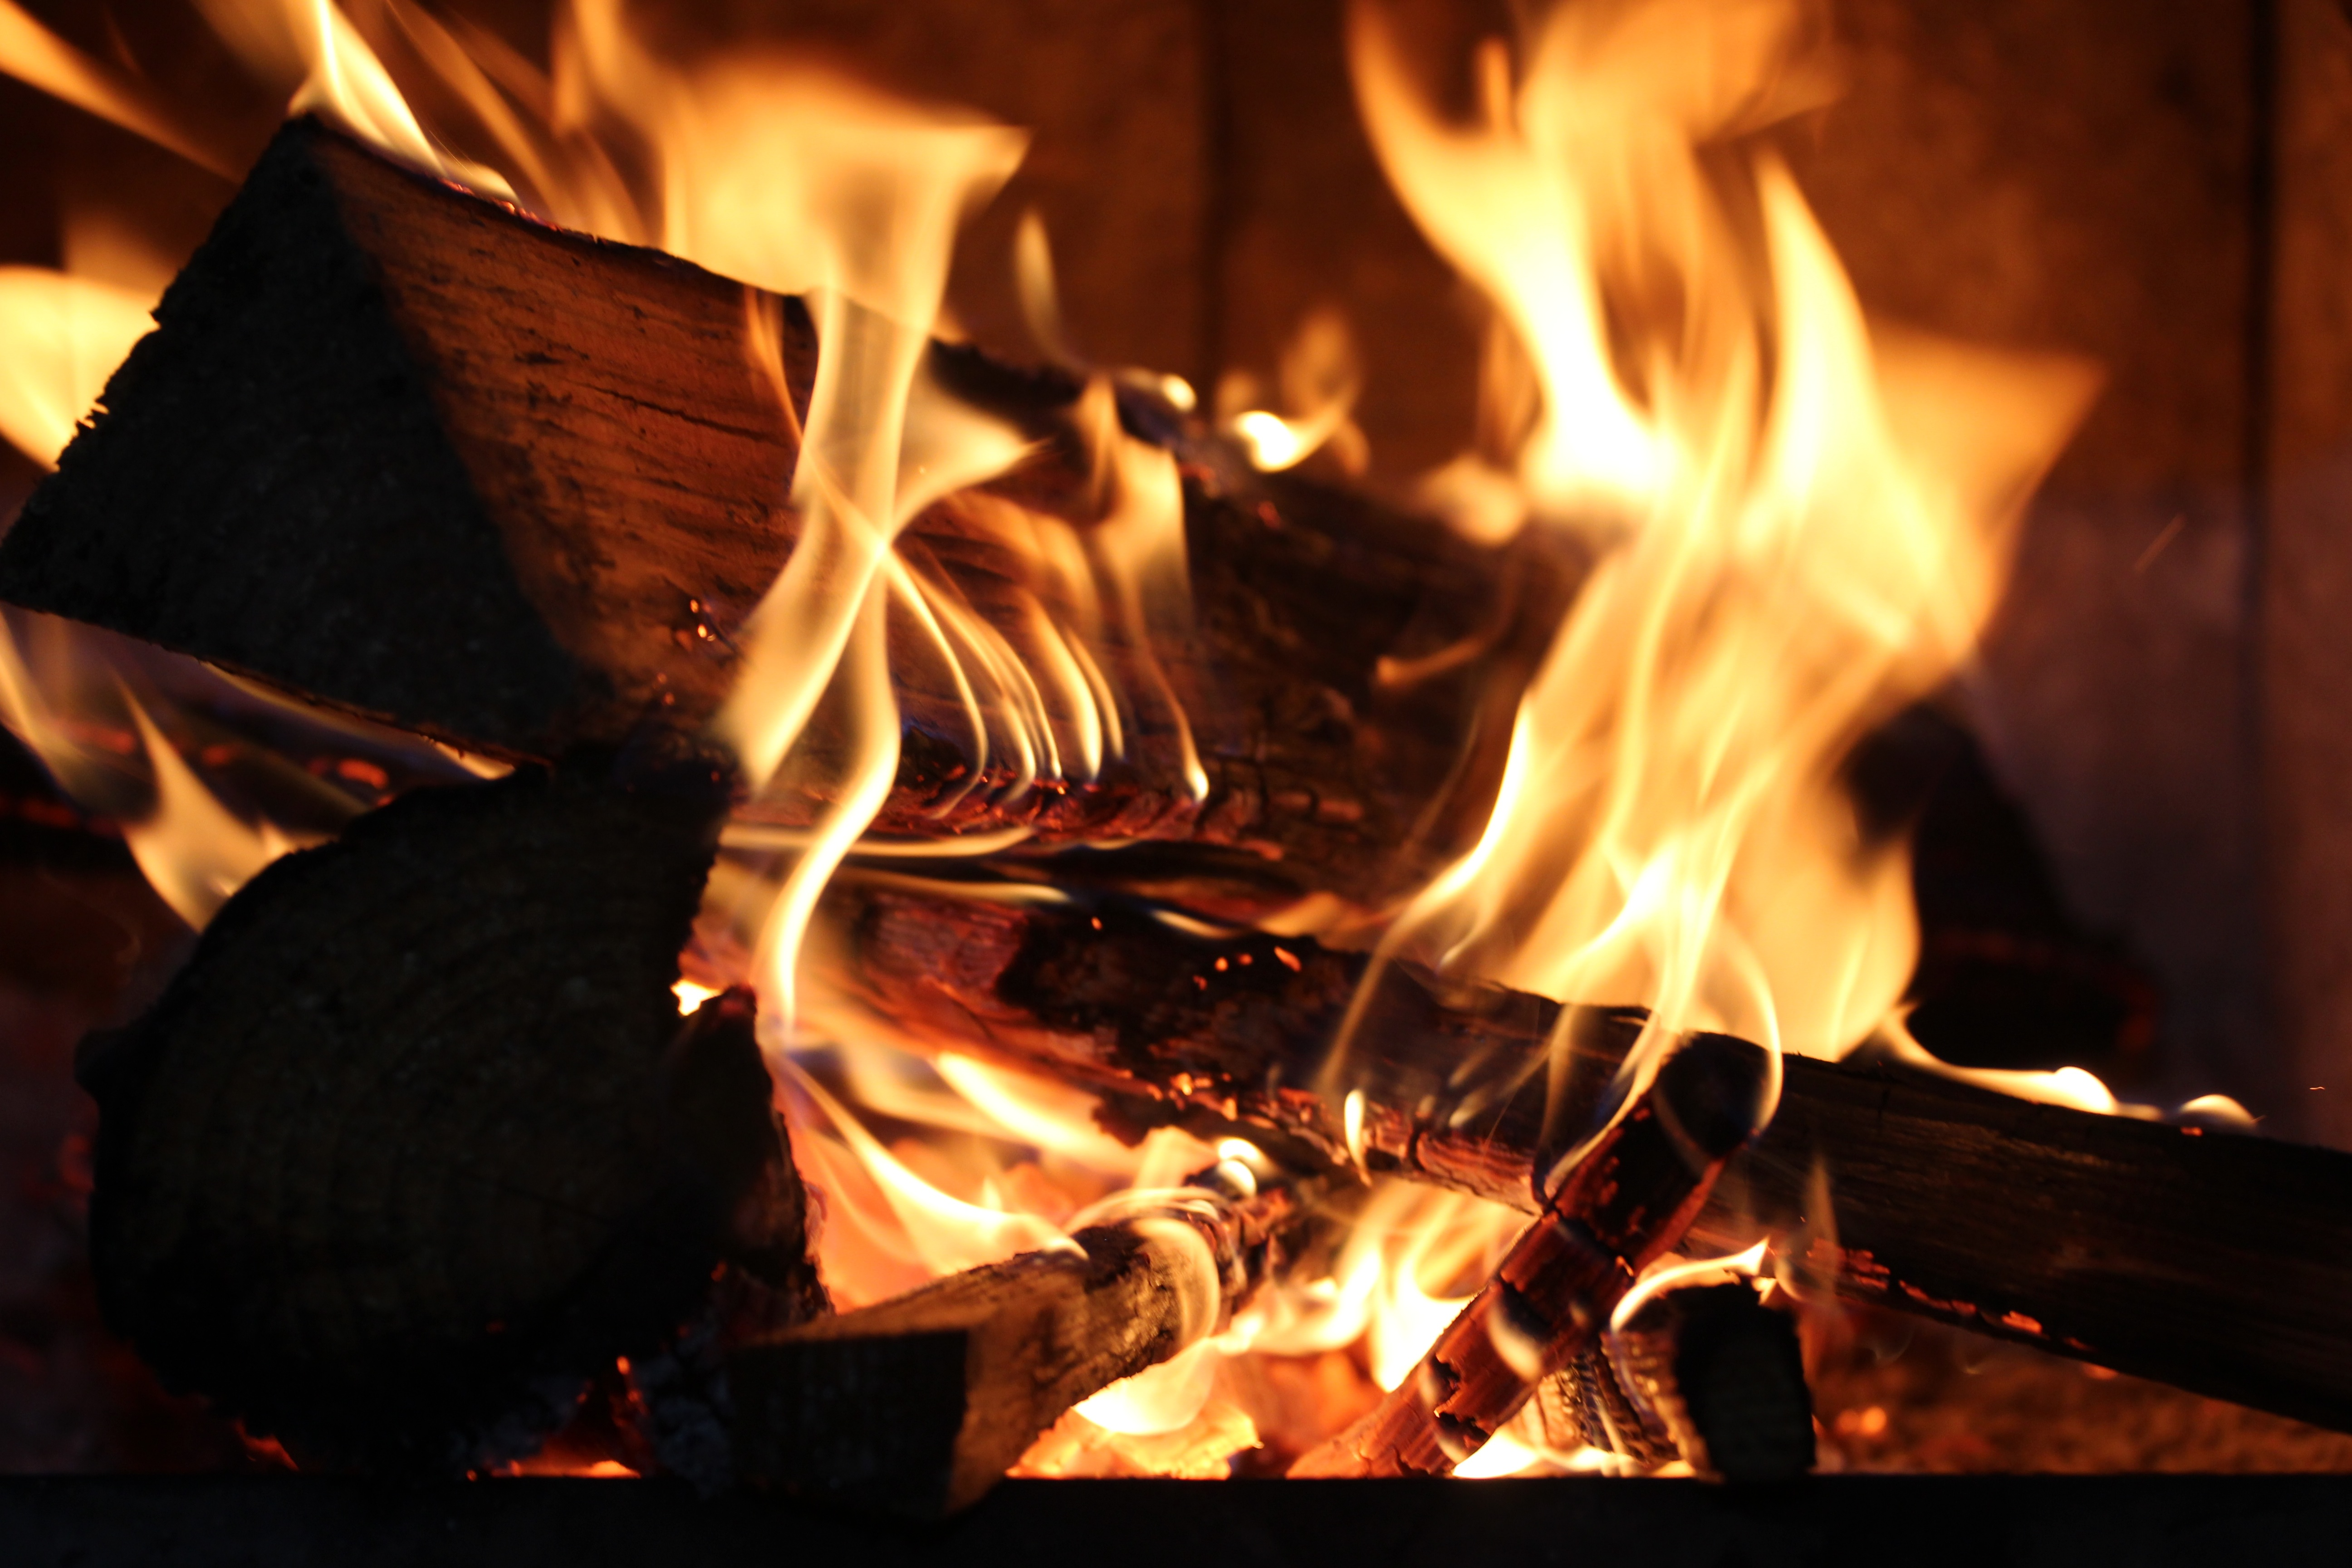 Campfire, fire, flames, mesmerizing, sacred fire, firewood, logs, campfire